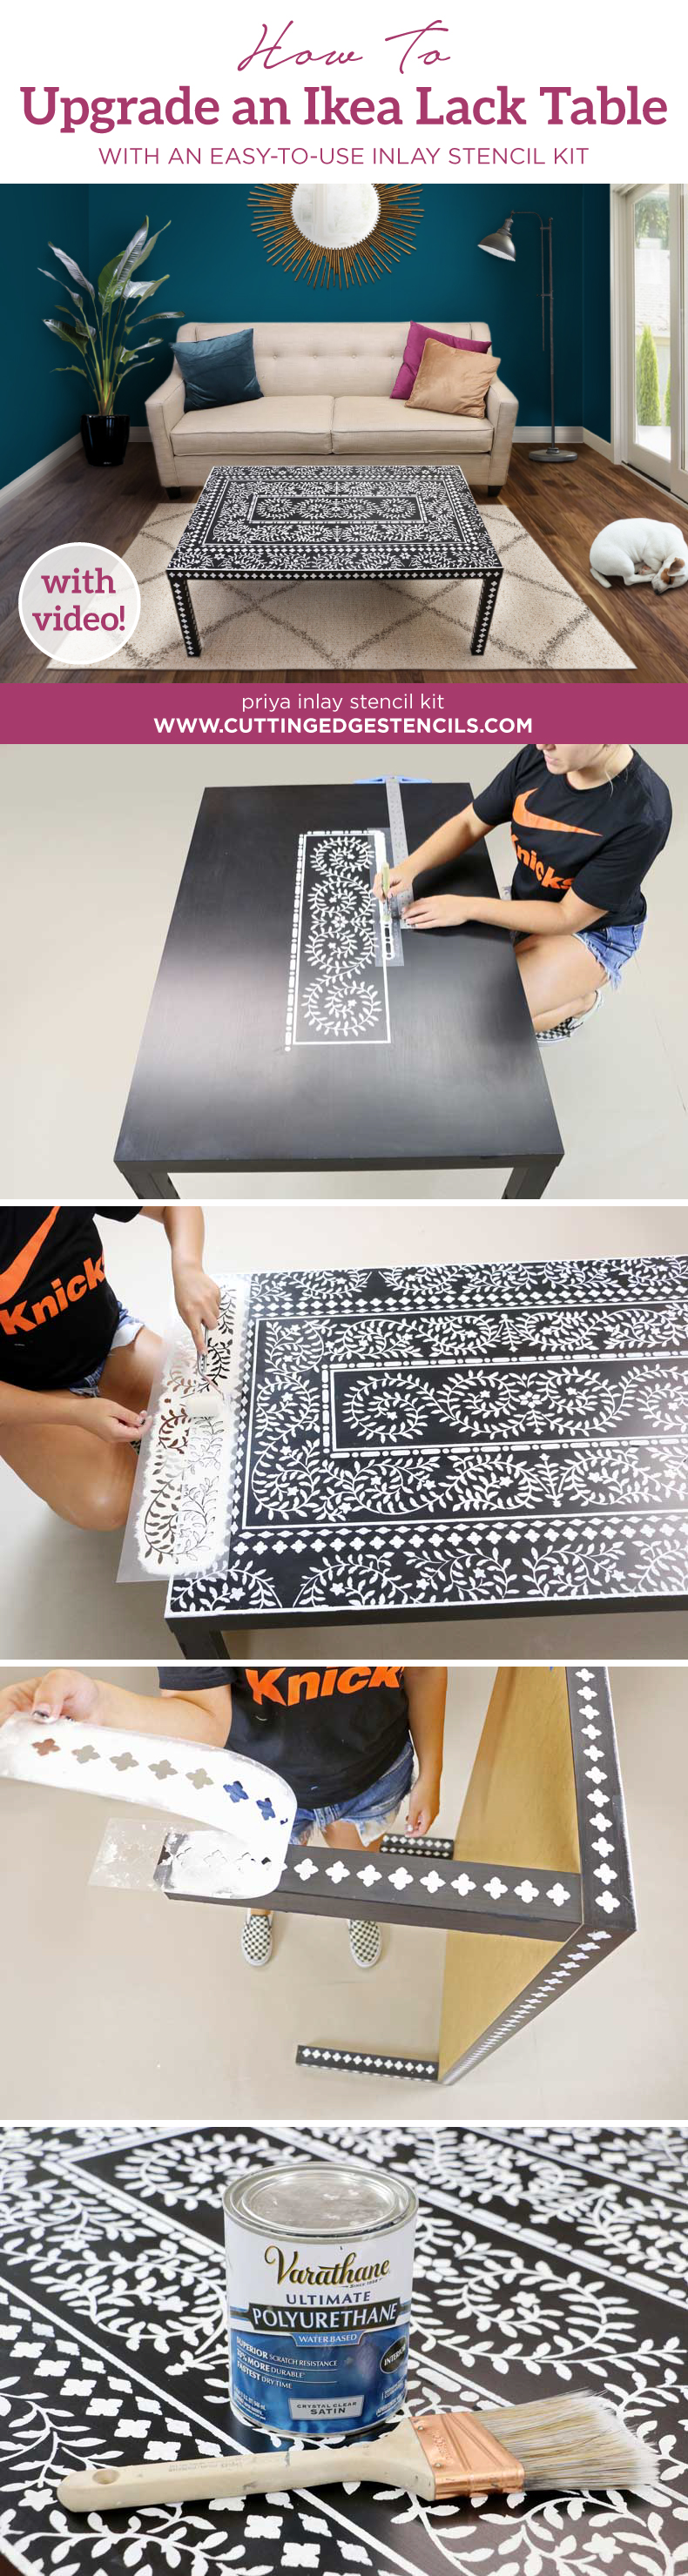 stenciled ikea table inlay collage